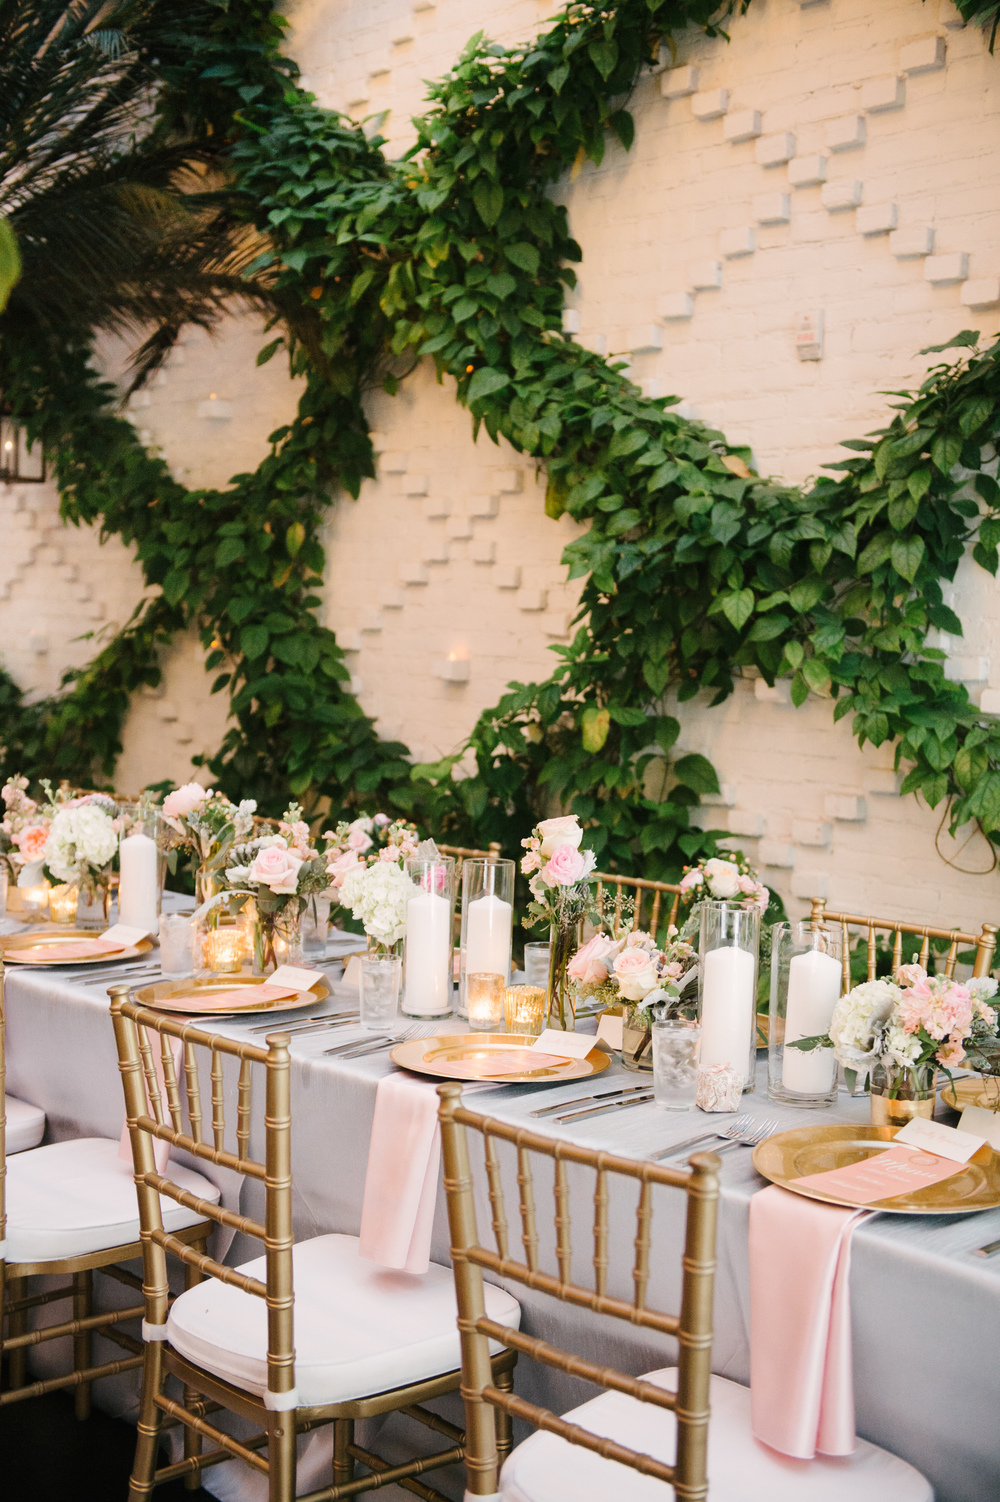 Jr oxford exchange wedding oh hello events tampa wedding 20151016salem274g junglespirit Image collections